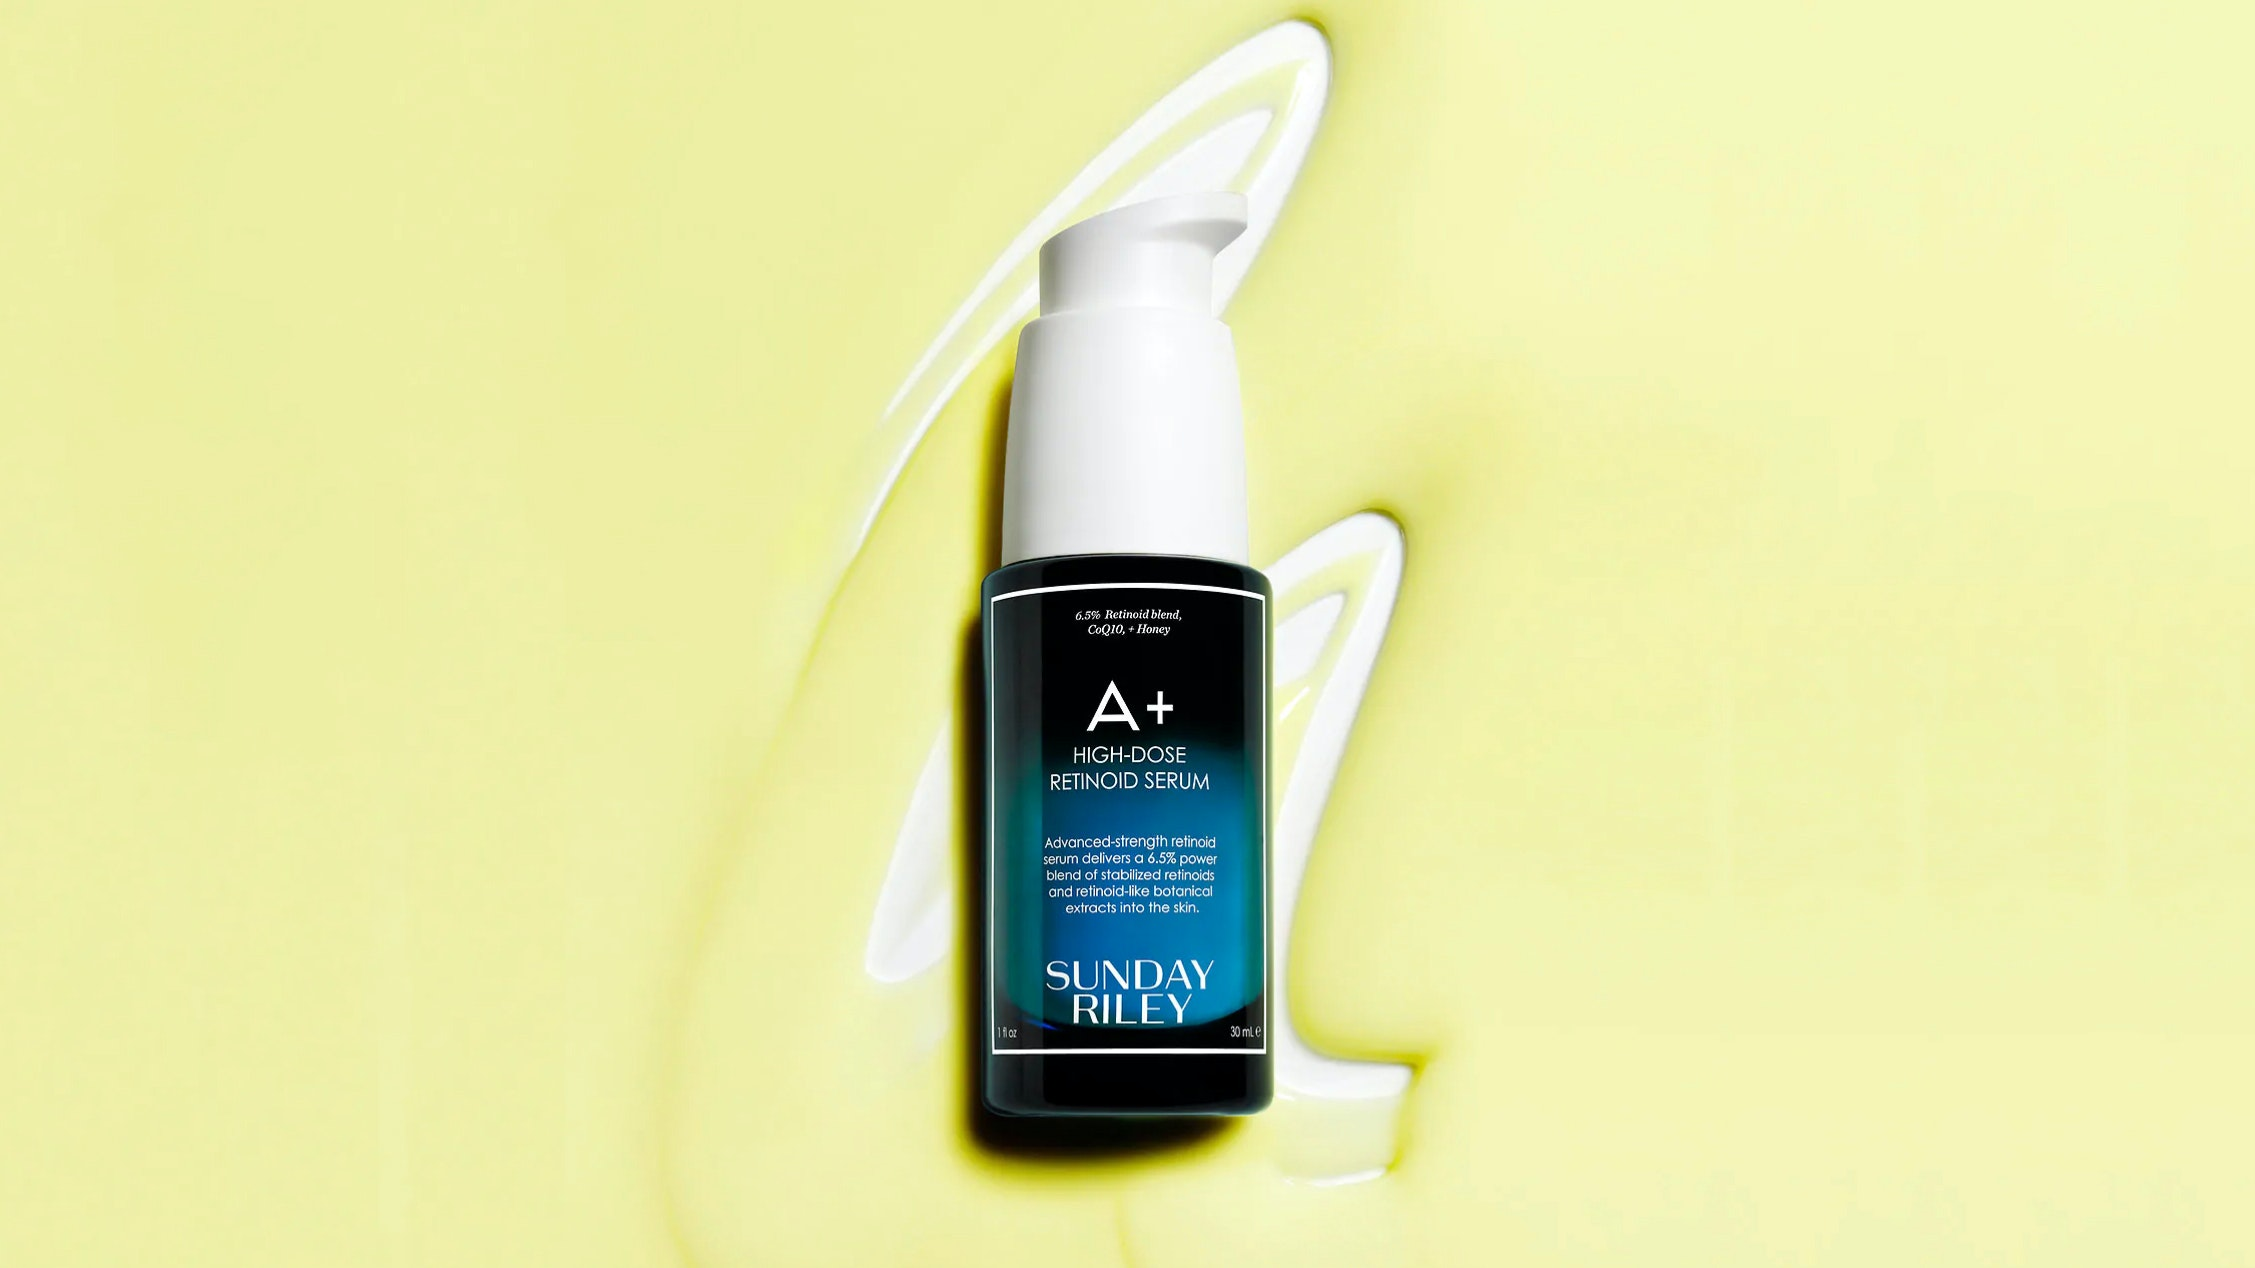 I Tested Sunday Riley's Retinol Serum Daily For 6 Weeks — These Are My Honest Thoughts